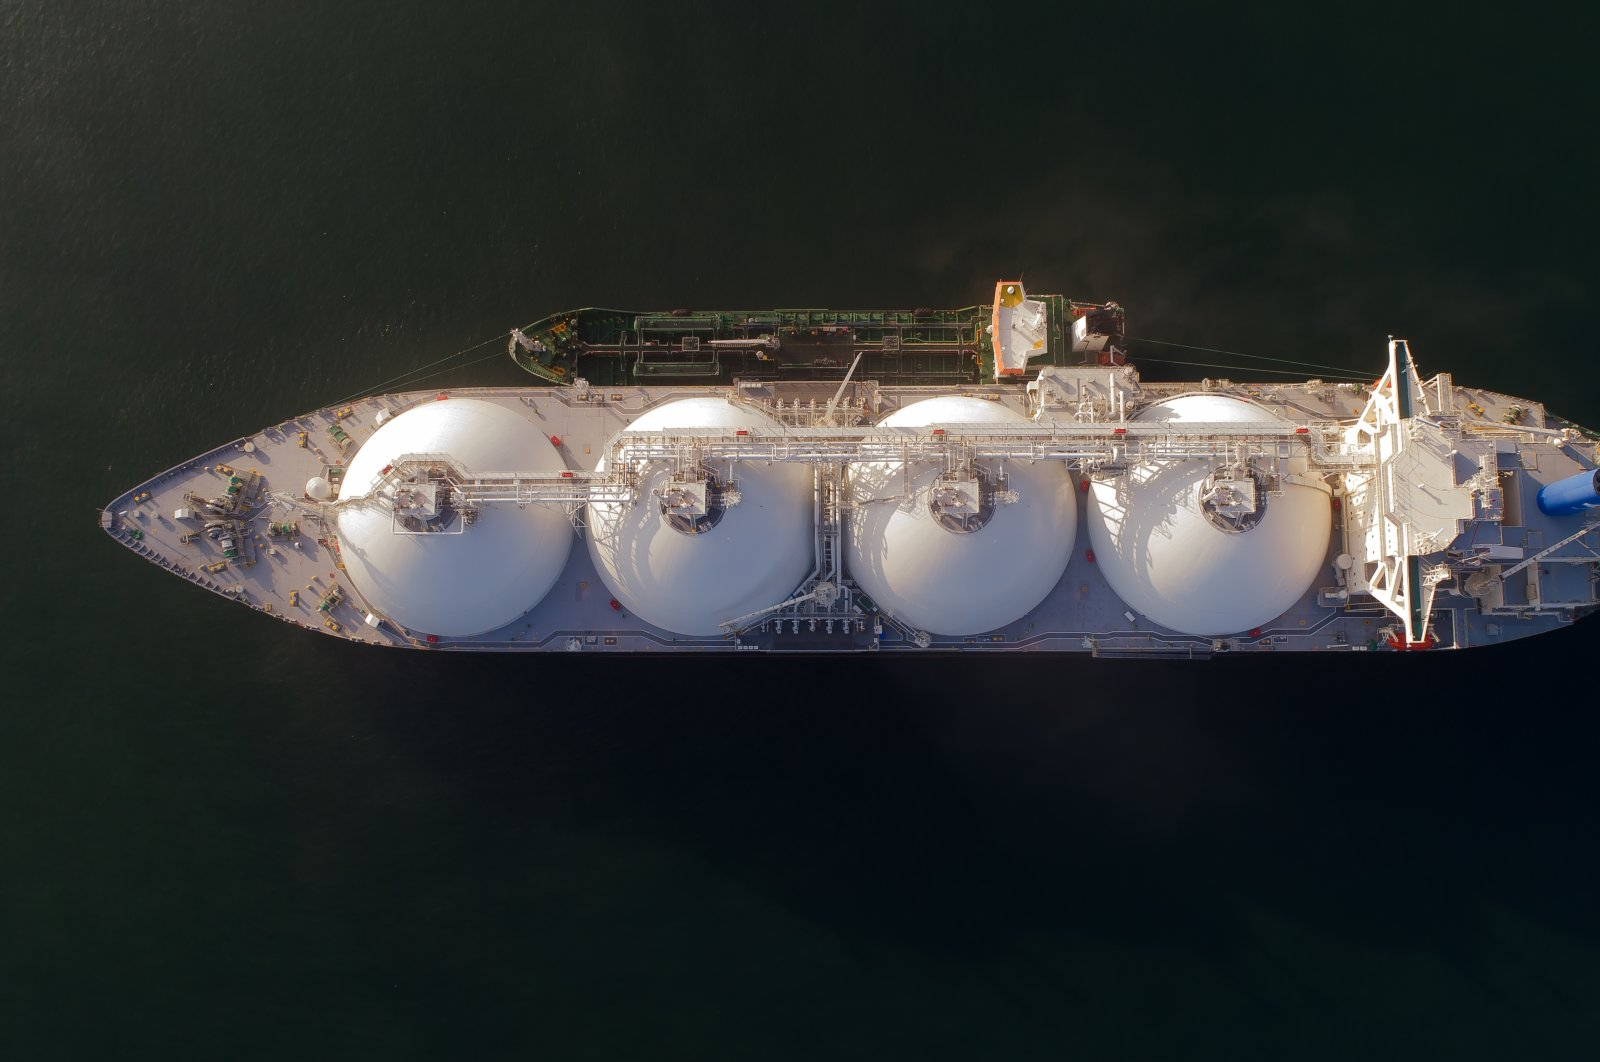 A bunkering LNG tanker is anchored near Nakhodka, Russia, July 28, 2017. (Shutterstock Photo)